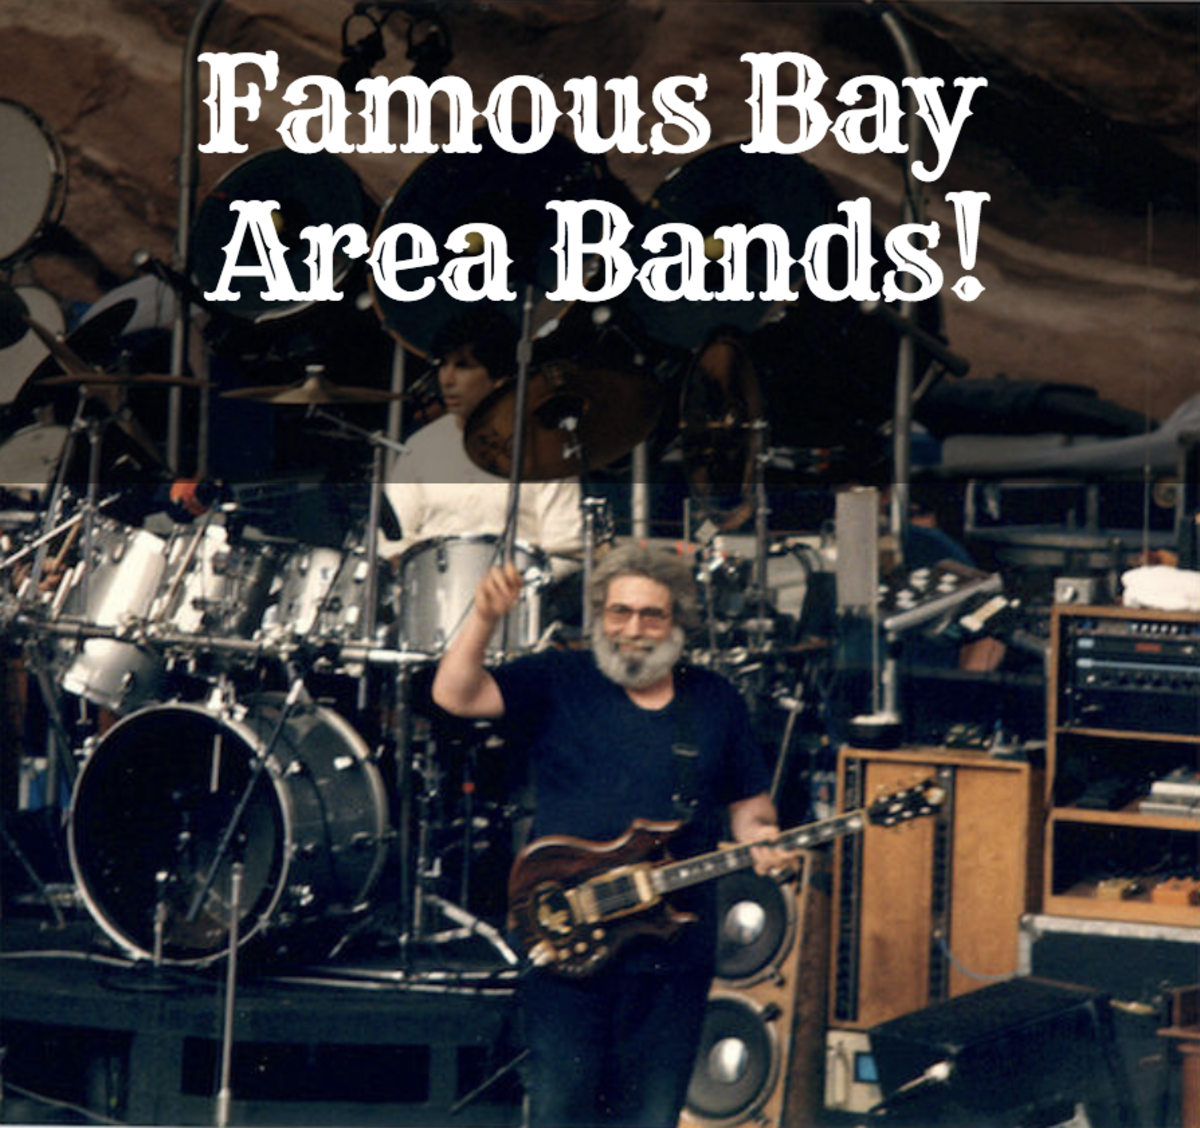 26 Popular, Famous, and Influential Bay Area Rock Bands